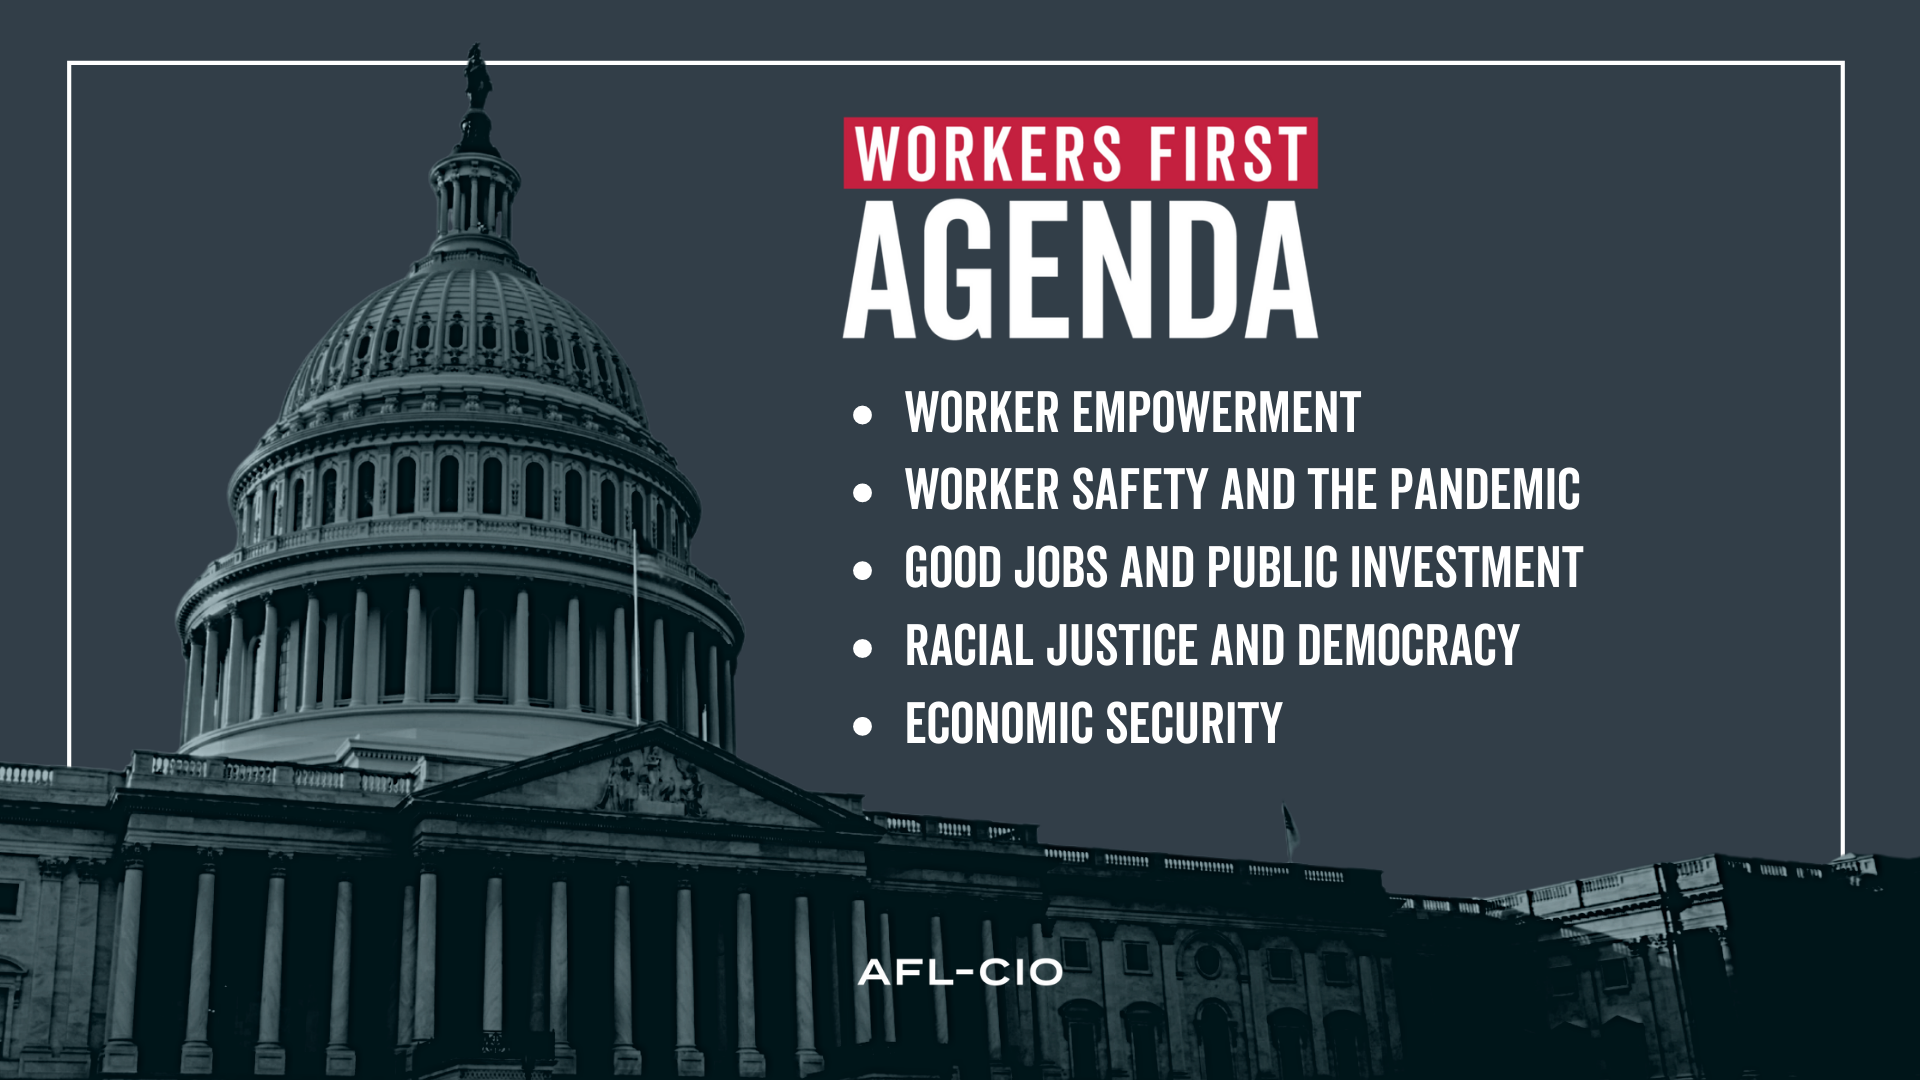 Workers_first_agenda_1920x1080_(1)